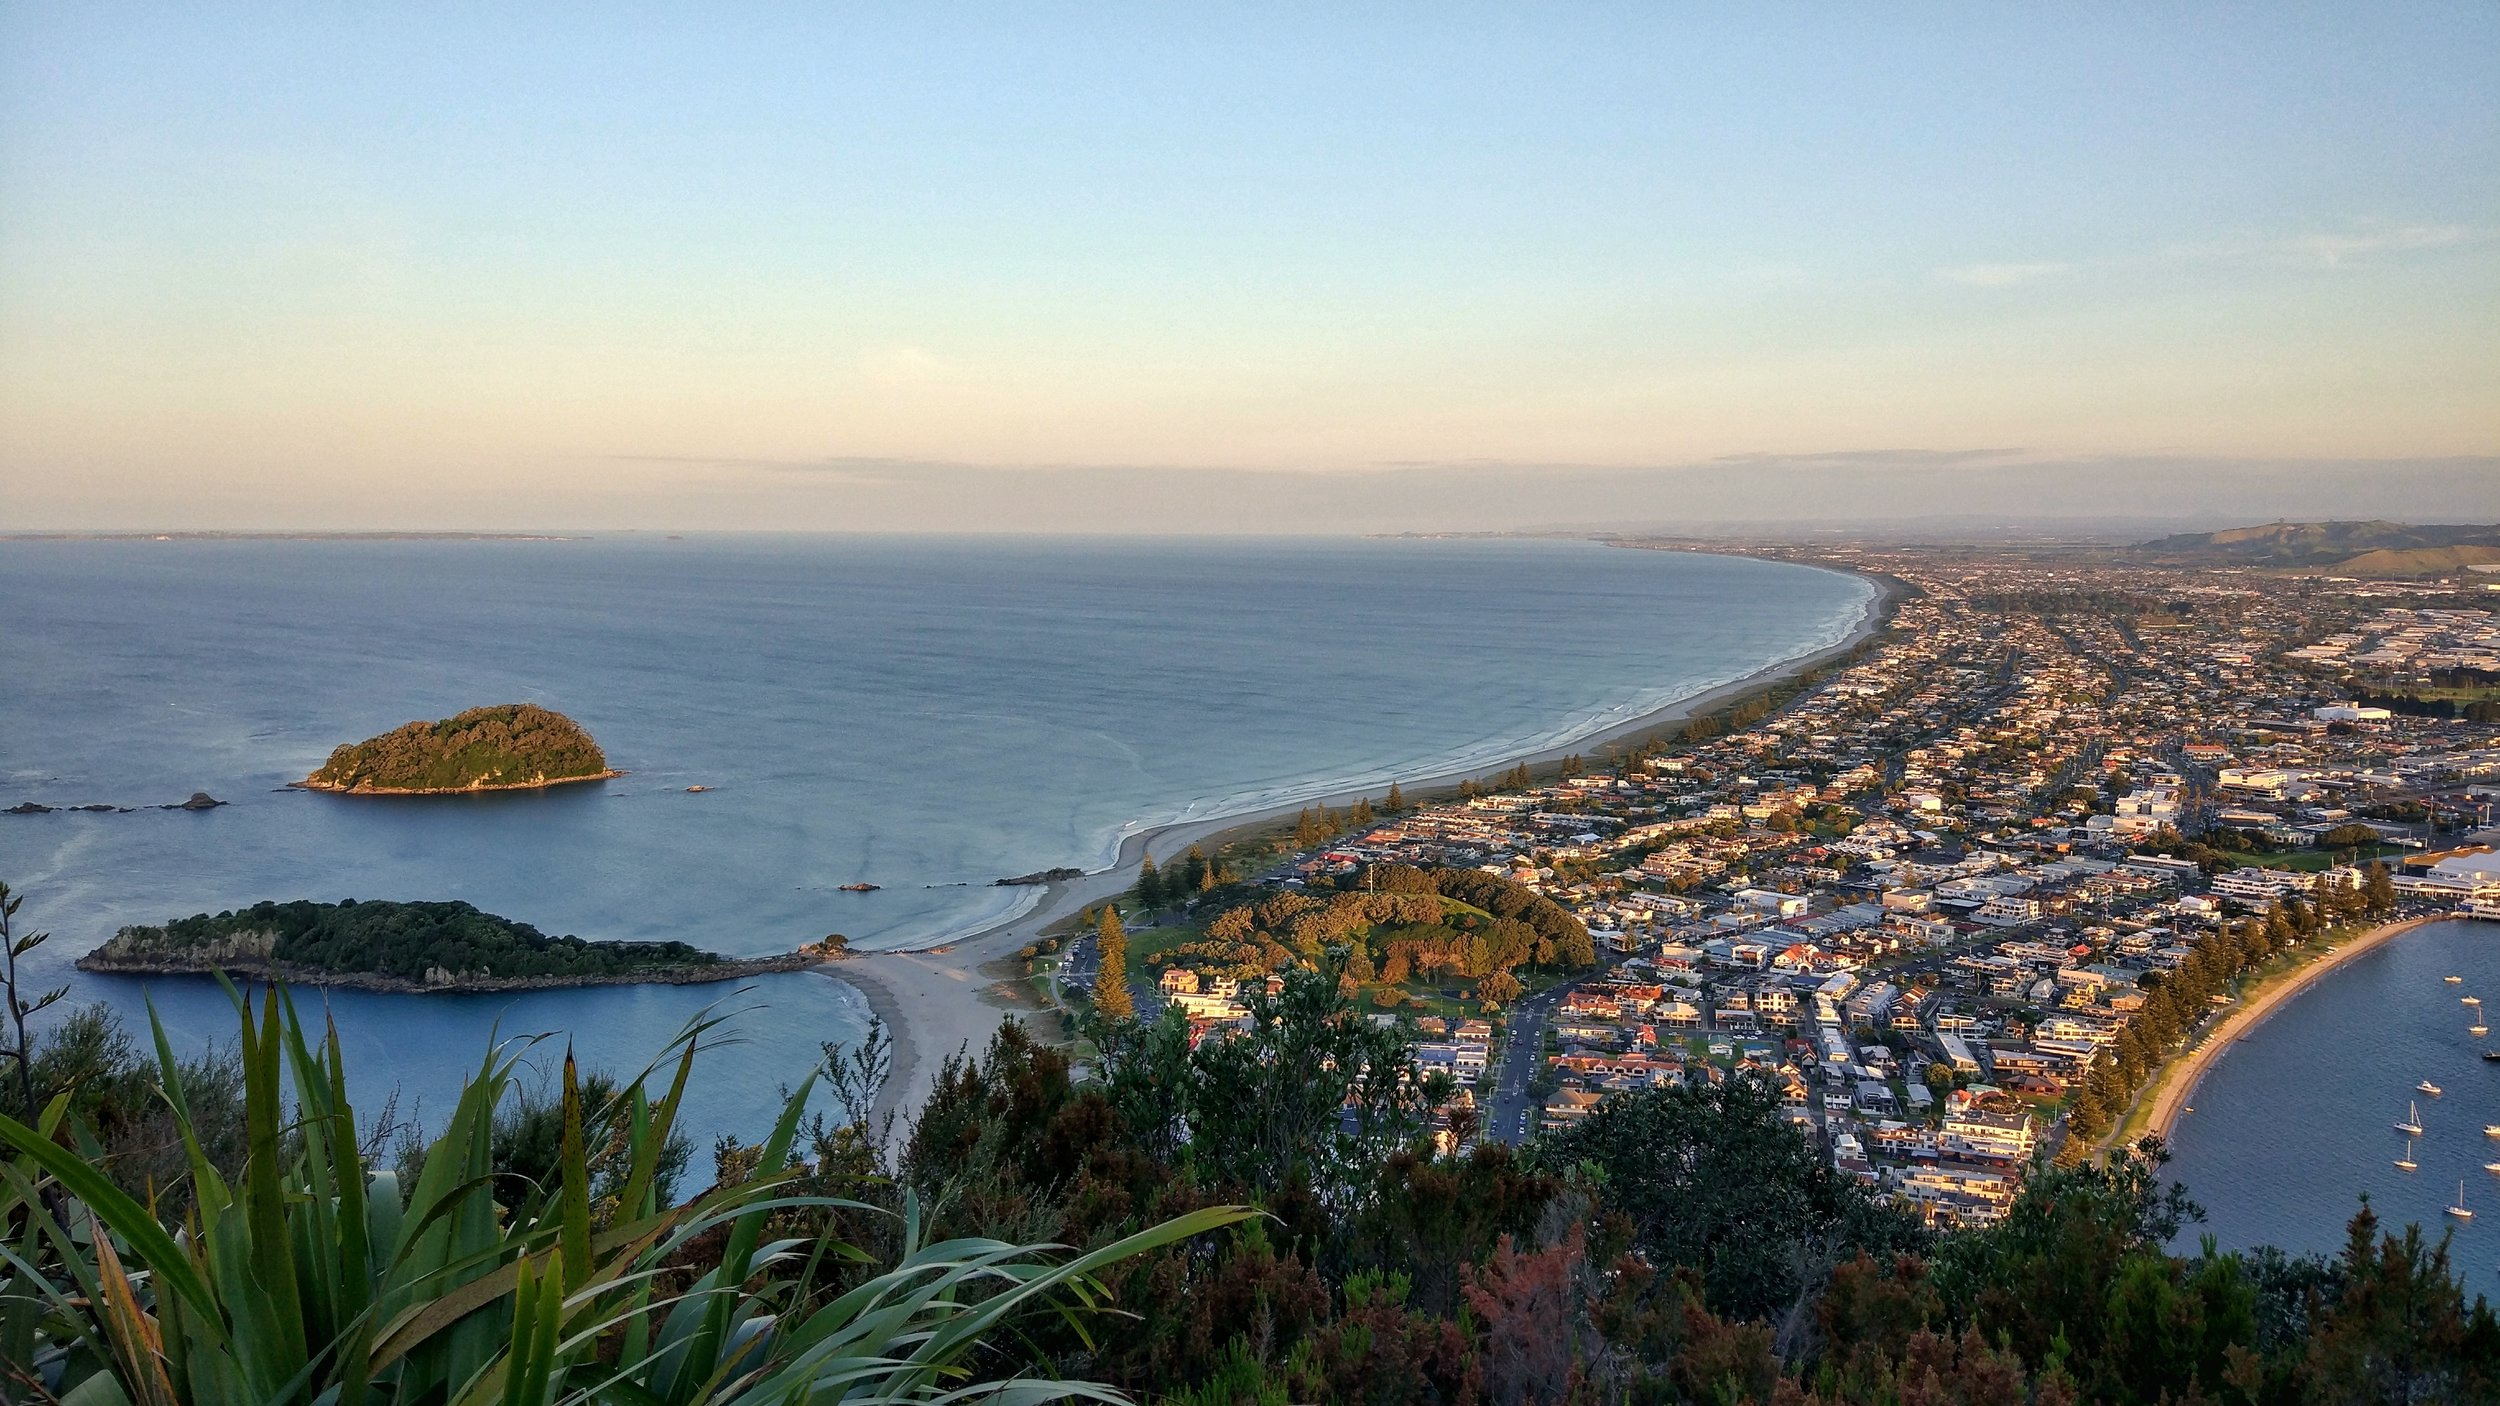 View from mount maunganui during golden hour